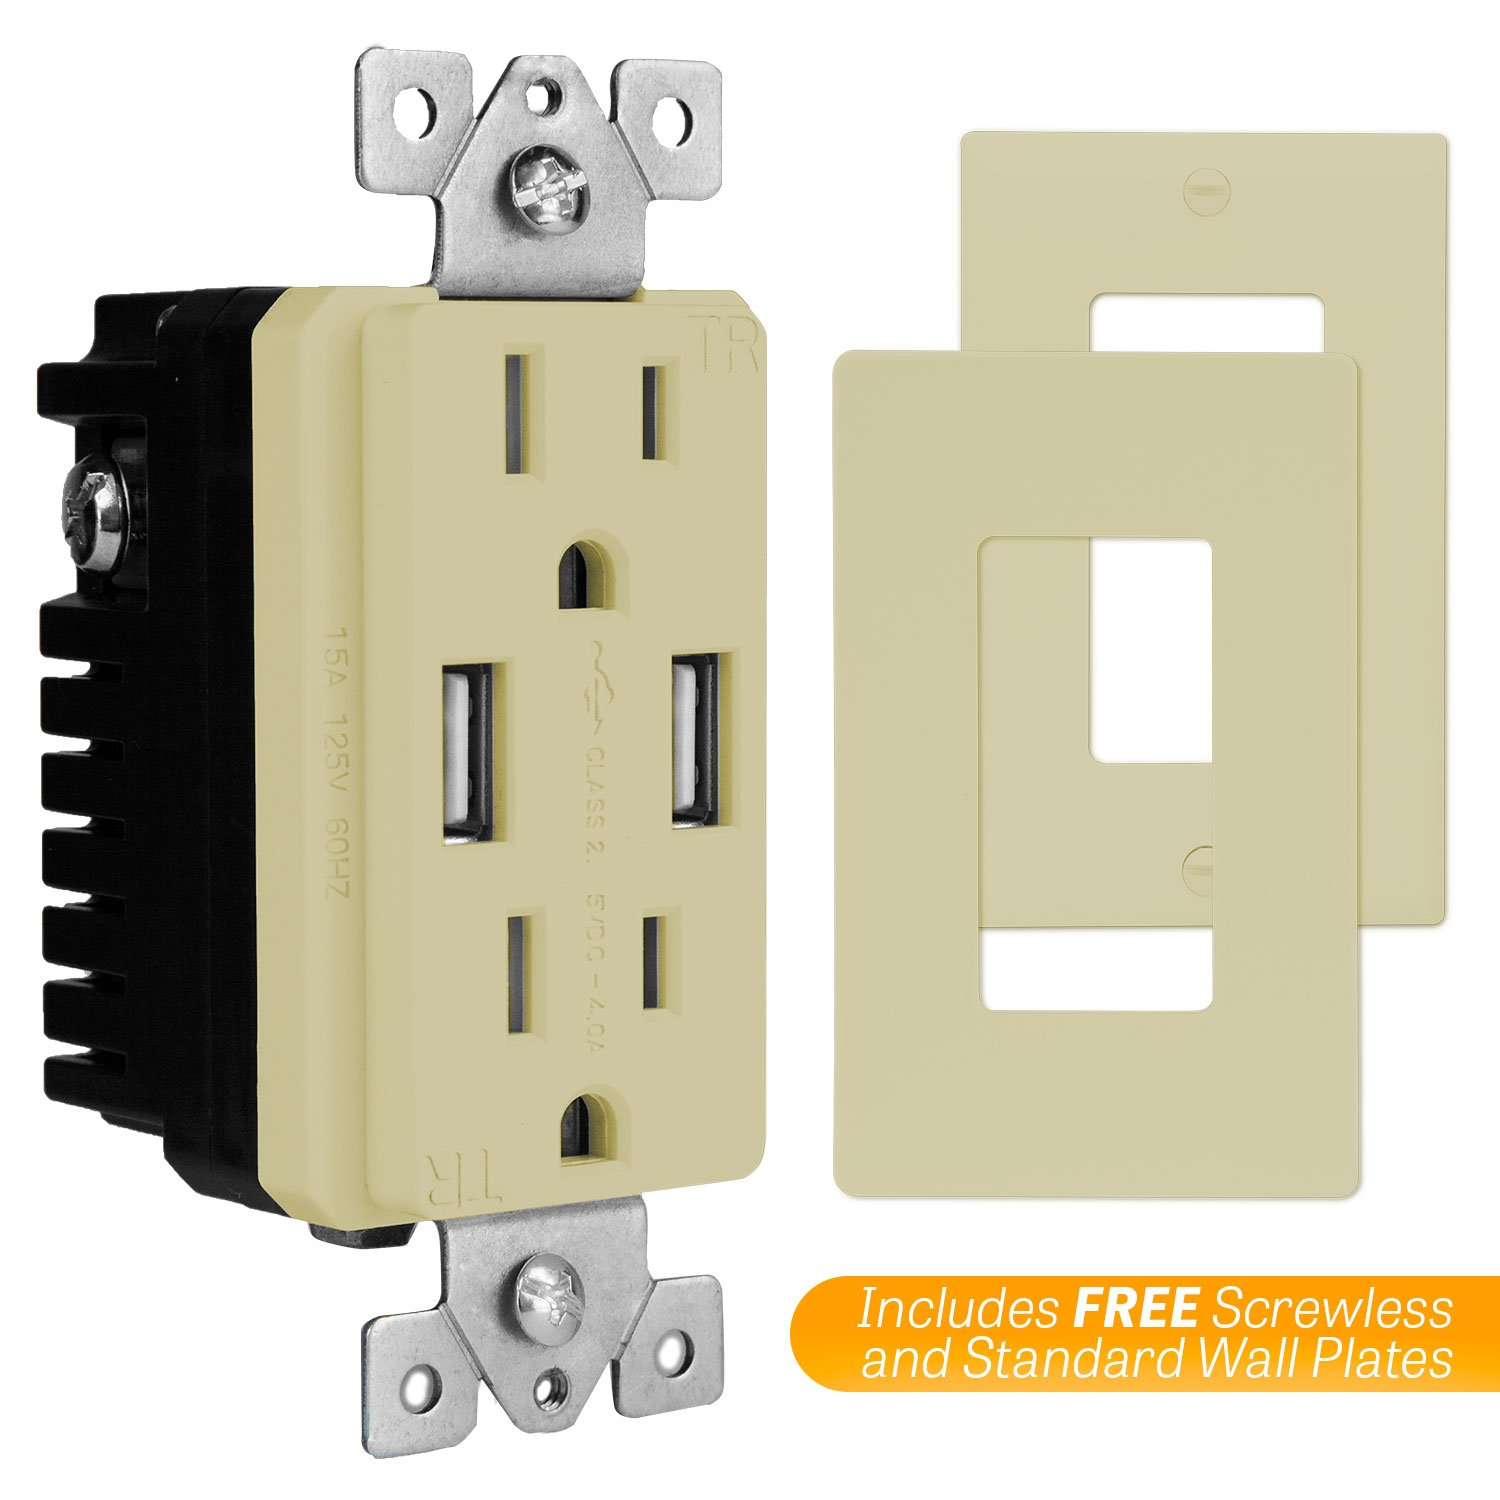 Topgreener Tu2154a High Speed Usb Outlet Wall Charger 15a Tr Ivory Electrical Outlets Light Switches Gfi Receptacle For Iphone Xs Max Xr X 8 7 6s Plus Ipad Lg Htc Compatible Samsung Galaxy